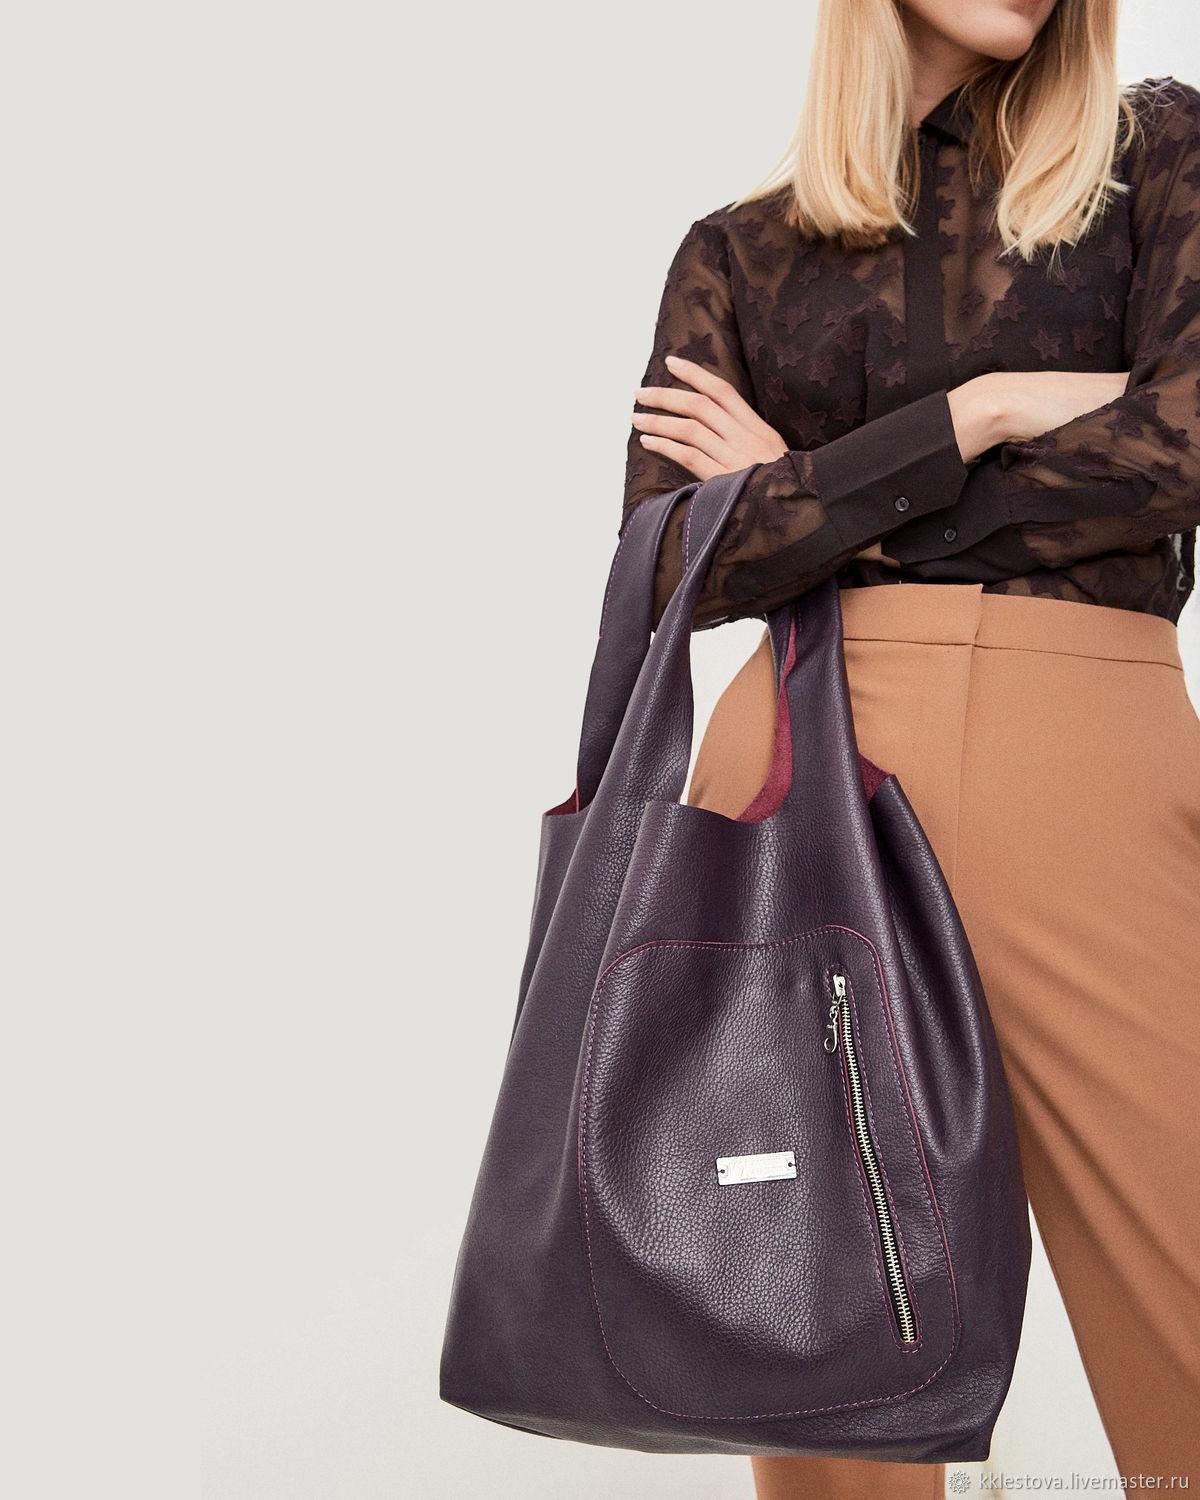 Bag - Bag Pack - large size with two pockets, Sacks, Moscow,  Фото №1